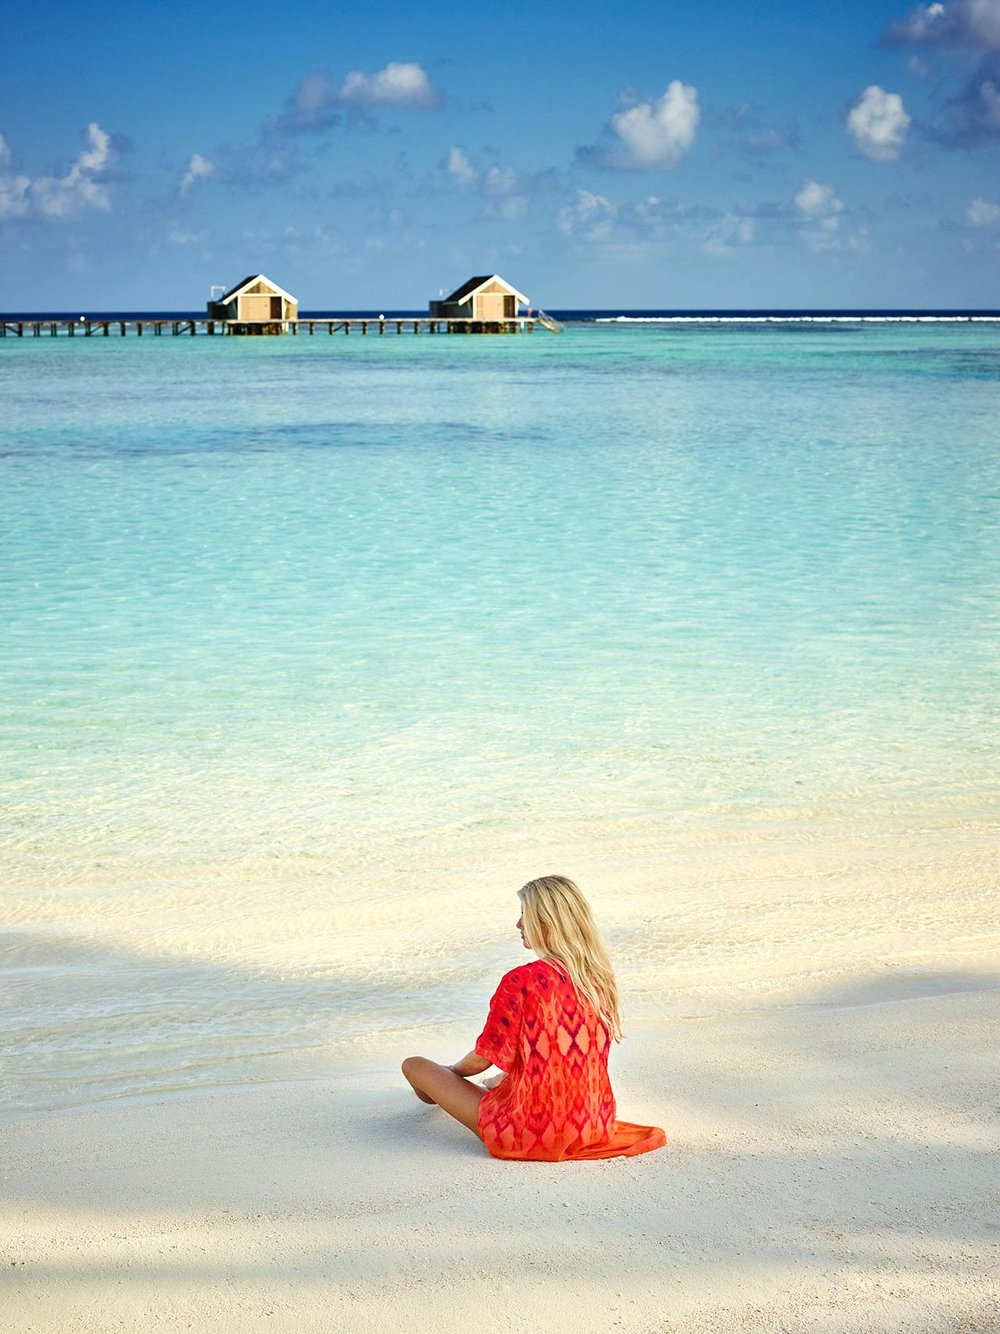 invite-to-paradise-maldives-luxury-holiday-honeymoon-package-specialists-experts-travel-agent-tour-operator-lux-south-ari-atoll-resort-beach-red-woman.jpg